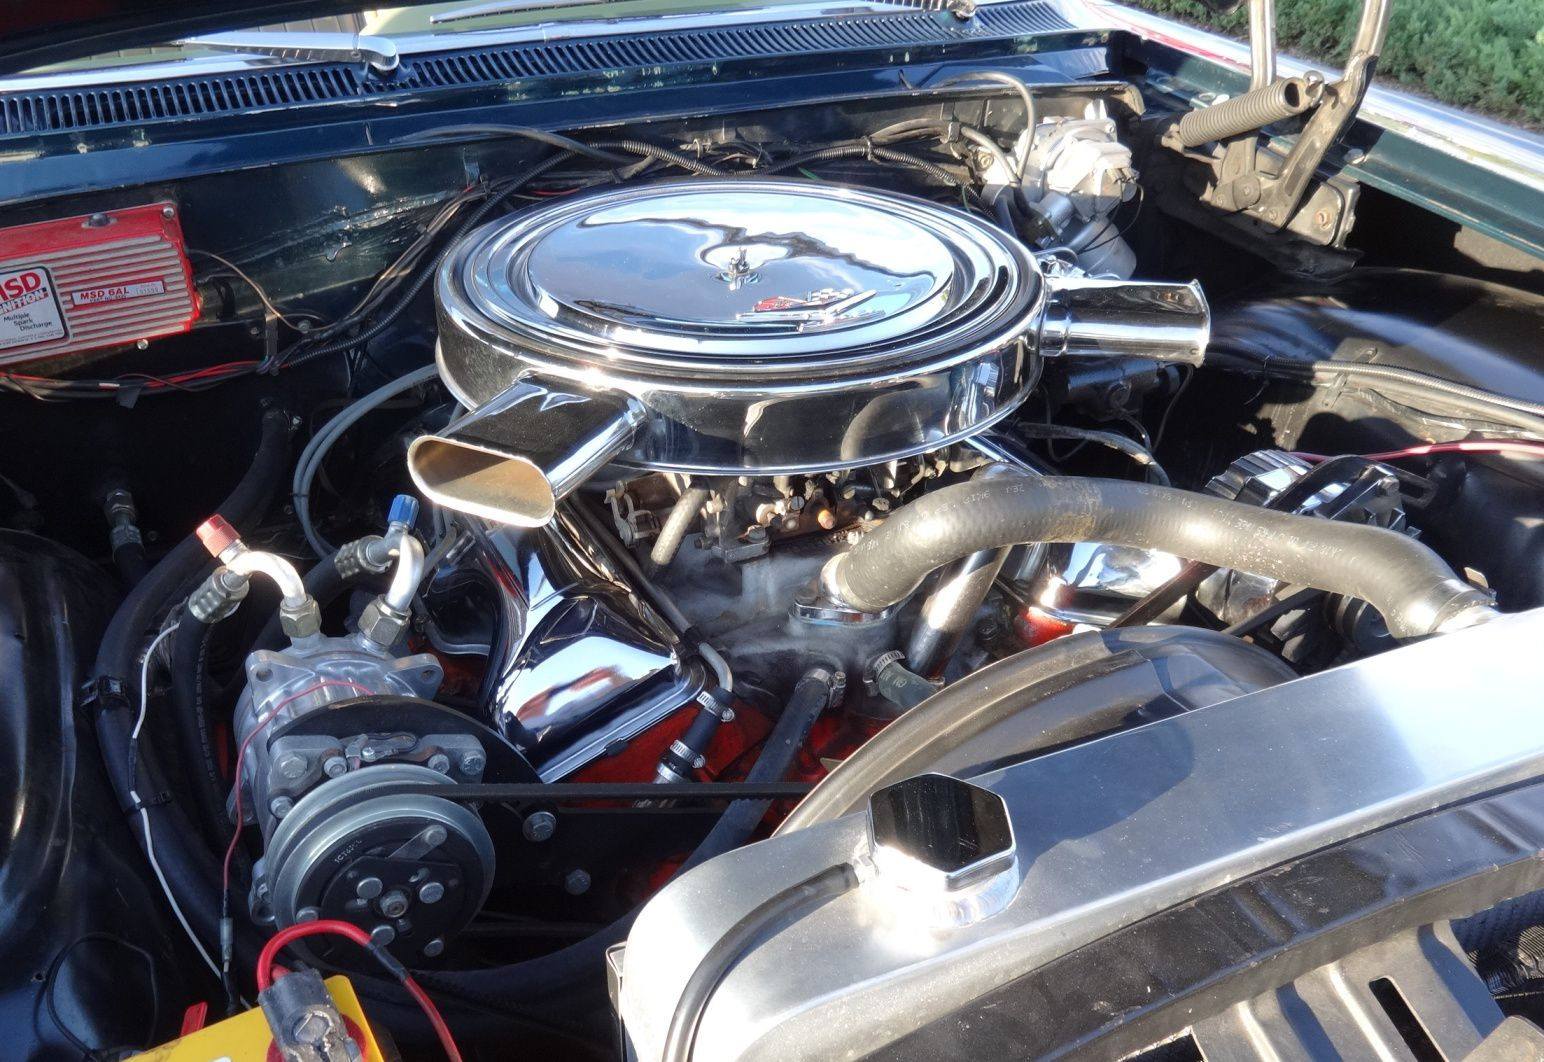 All Chevy 1992 chevy 454 engine specs : Top 5 Muscle Car Engines